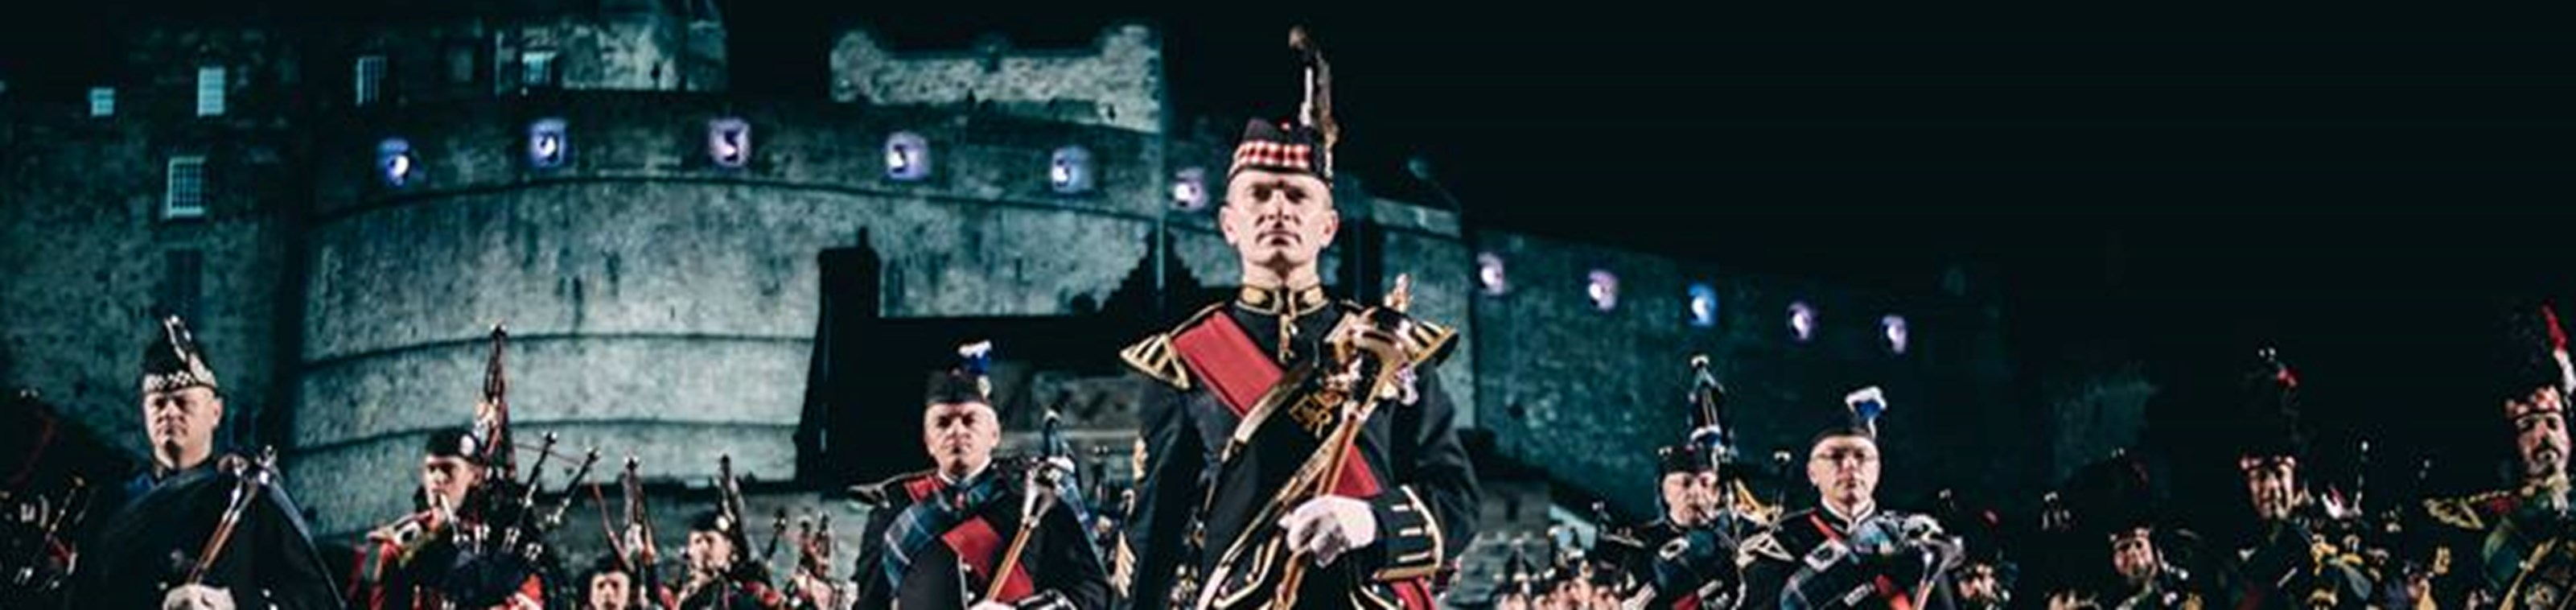 De Military Tattoo in Edinburgh